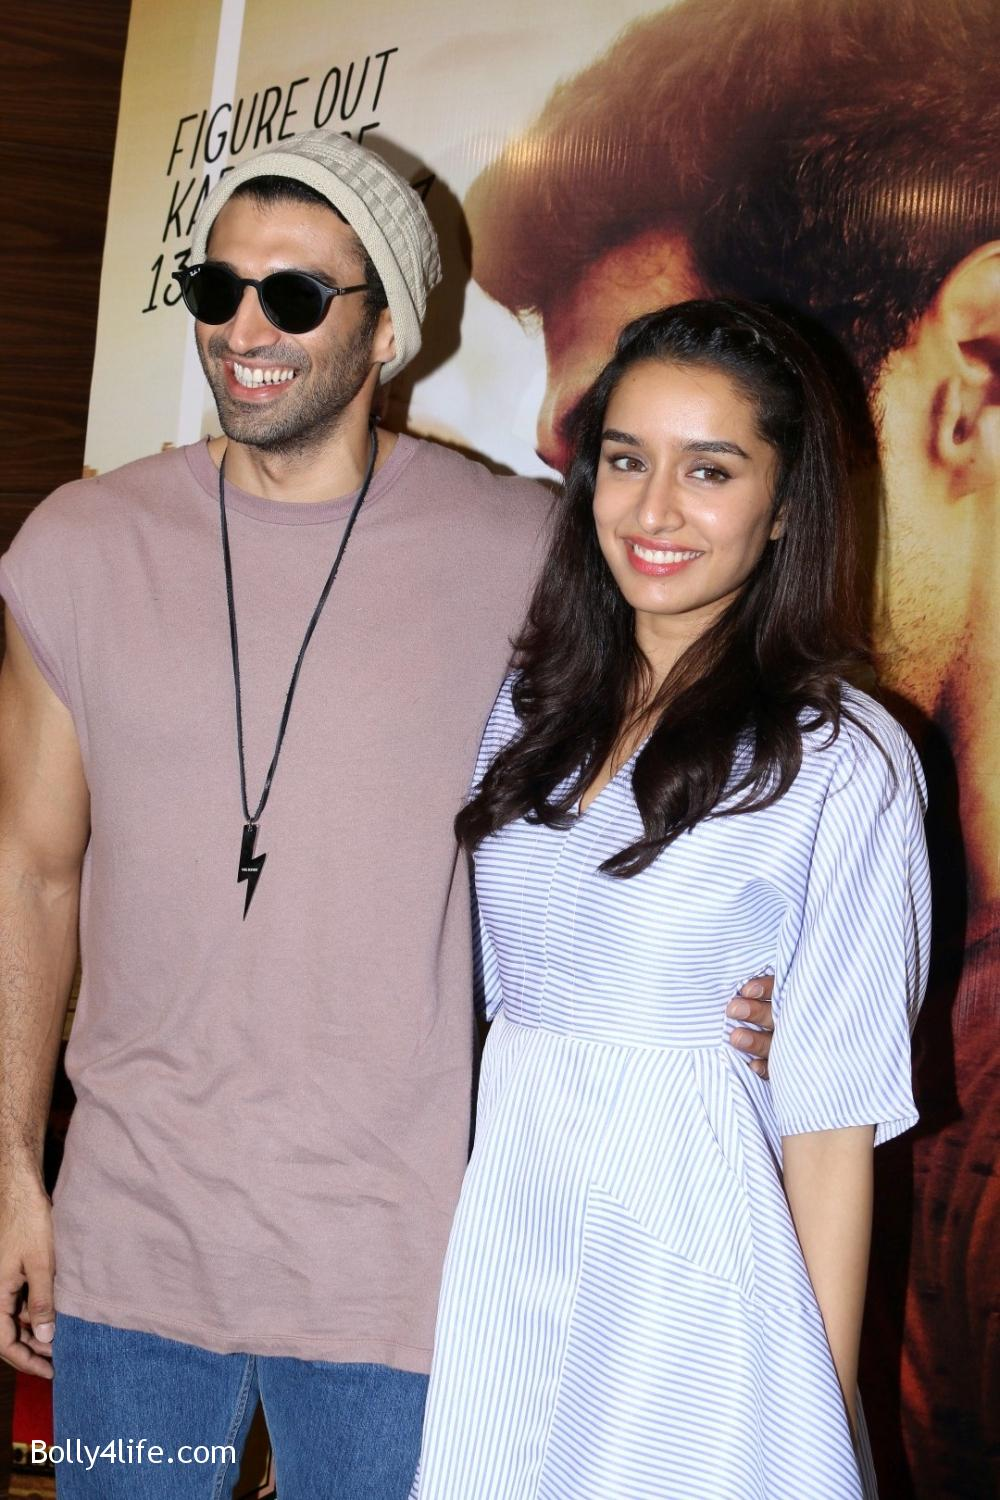 Aditya-Roy-Kapur-and-Shraddha-Kapoor-during-the-media-interaction-for-the-film-Ok-Jaanu-22.jpg